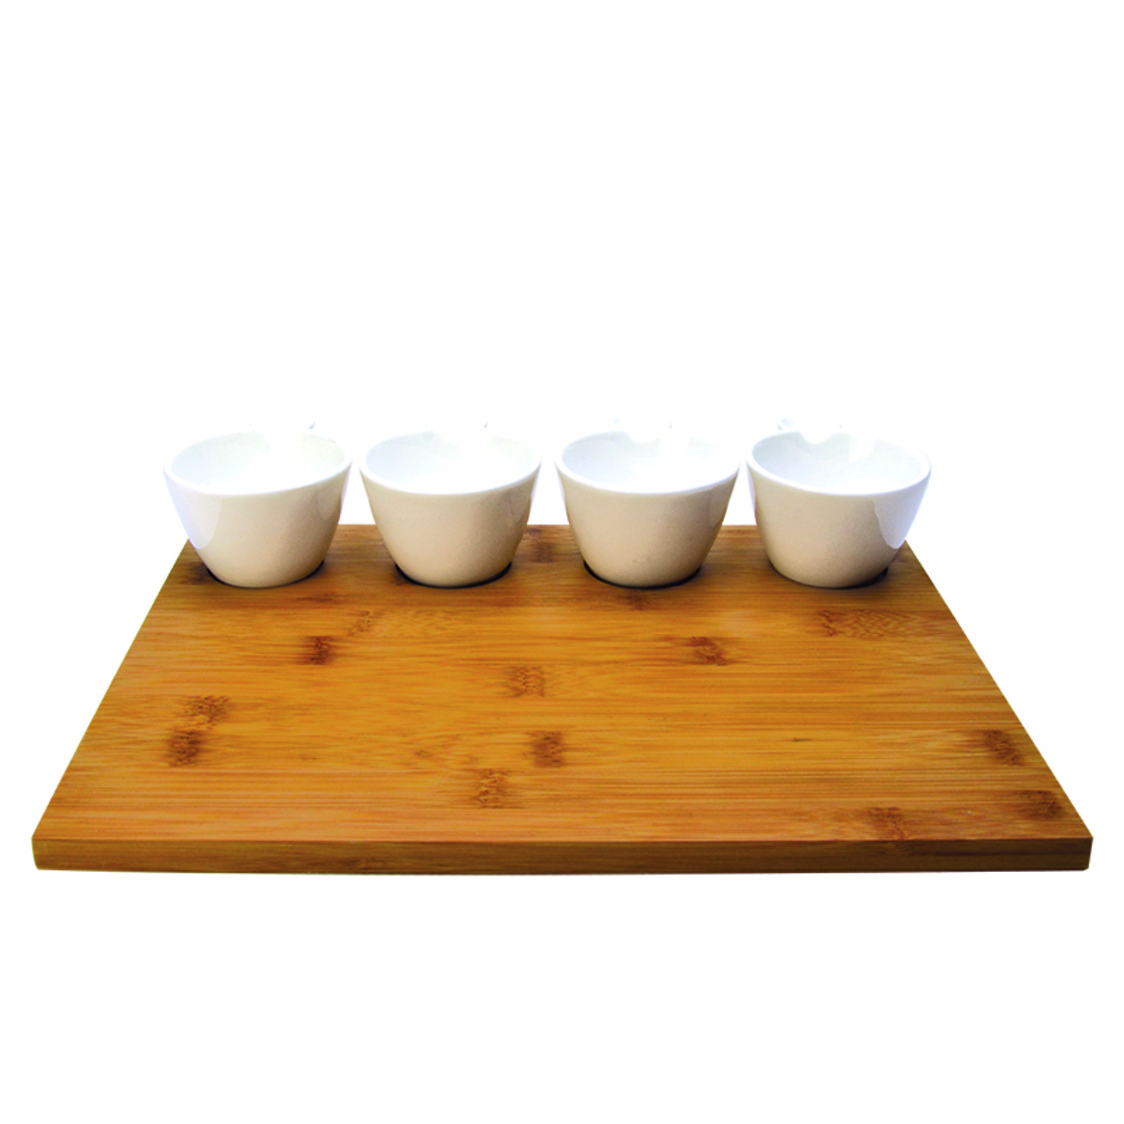 Timpani 4 Condiment Bowls On Bamboo Tray SR-49